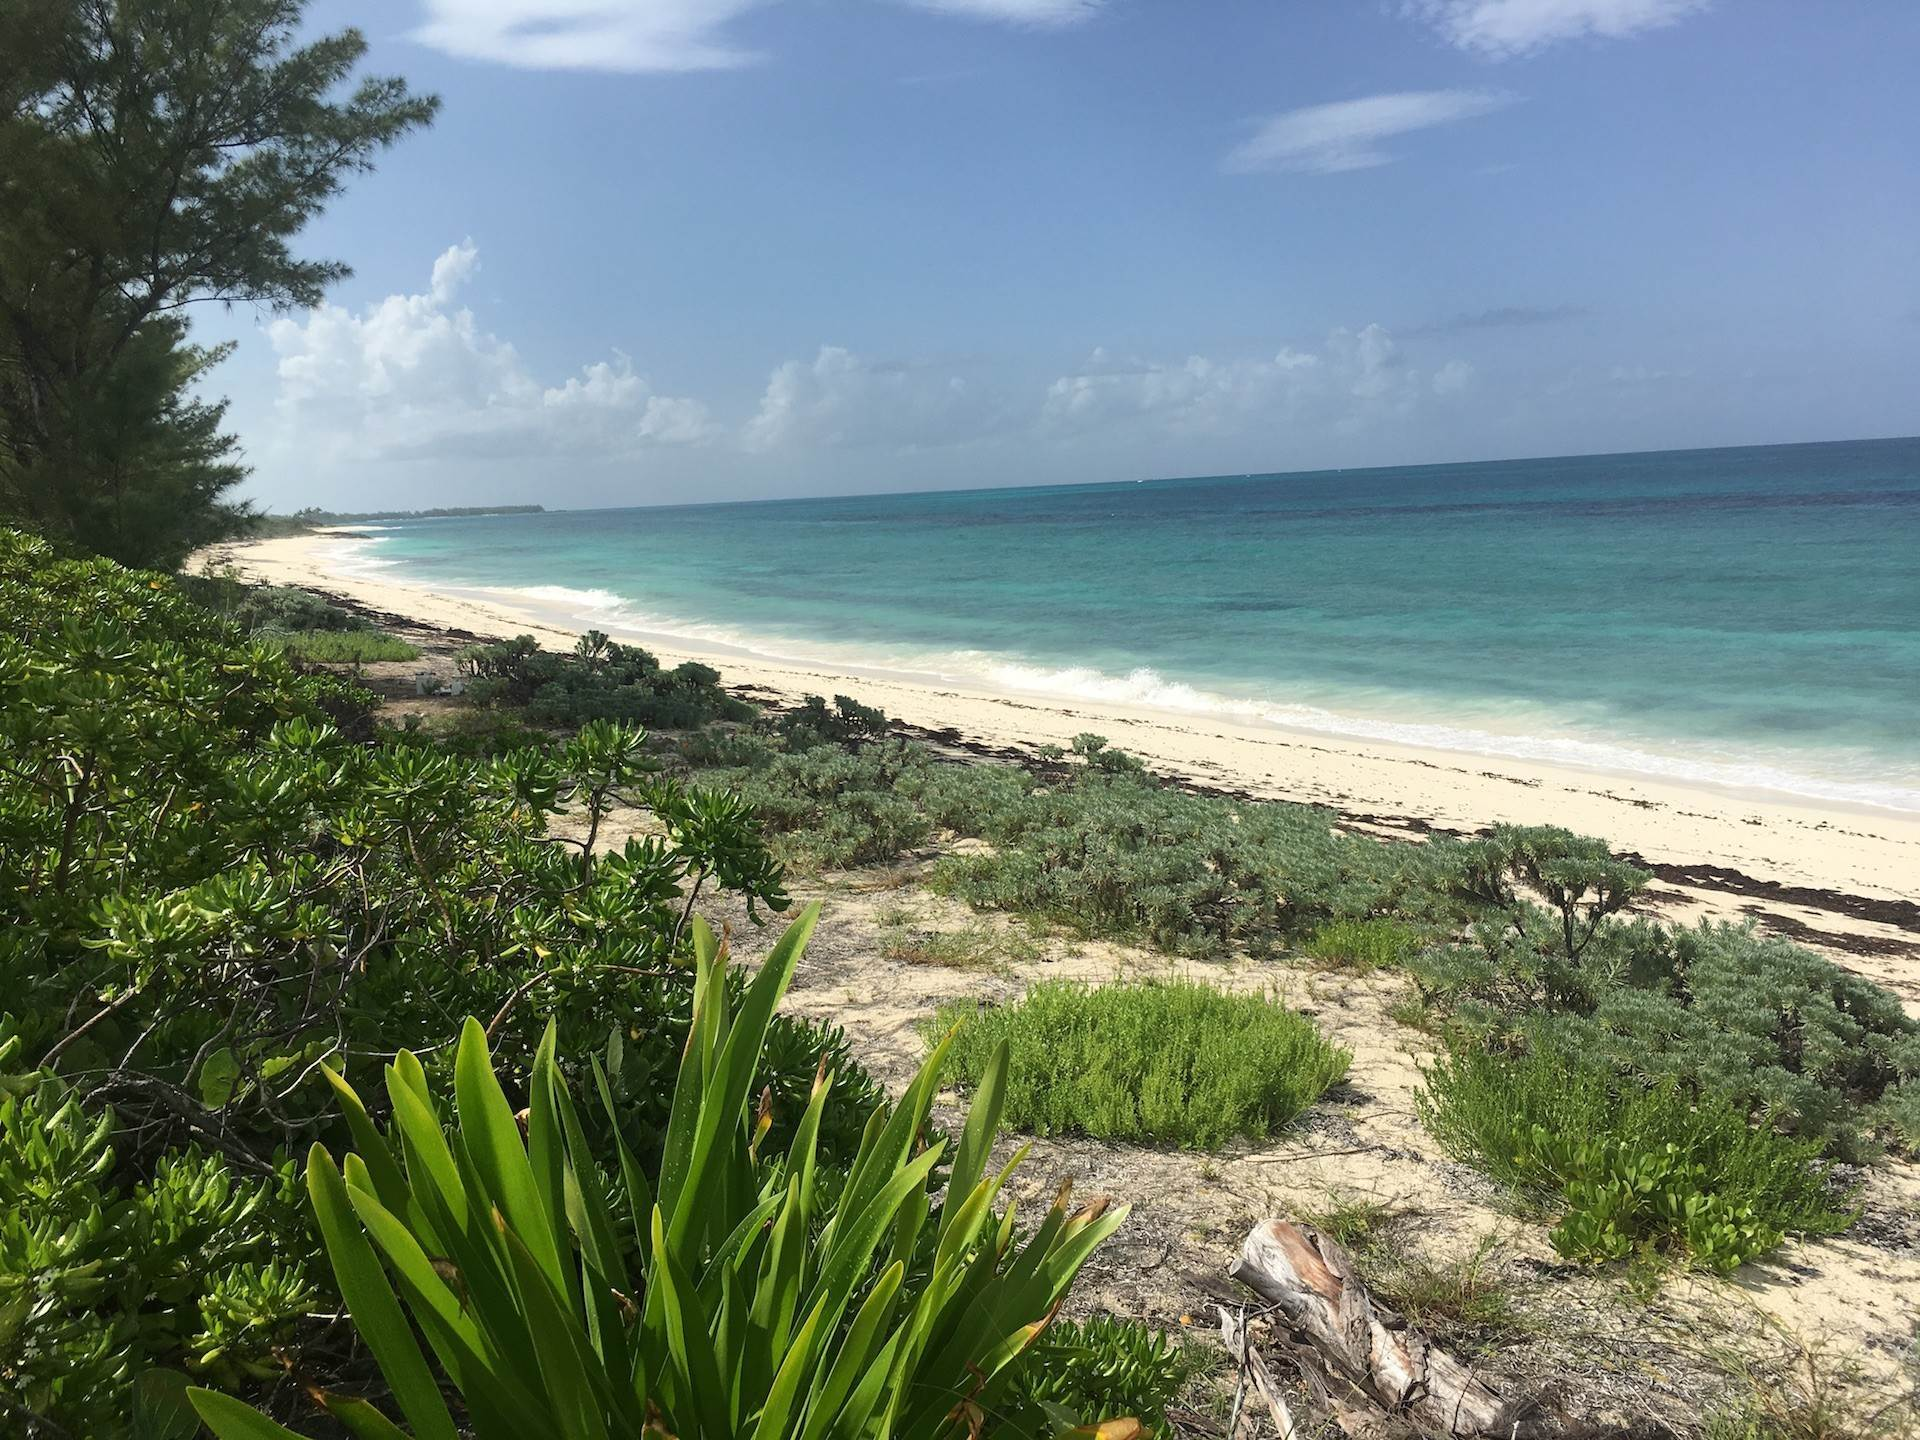 6. Land / Lots for Sale at Deck House Property - MLS 43732 Green Turtle Cay, Abaco, Bahamas